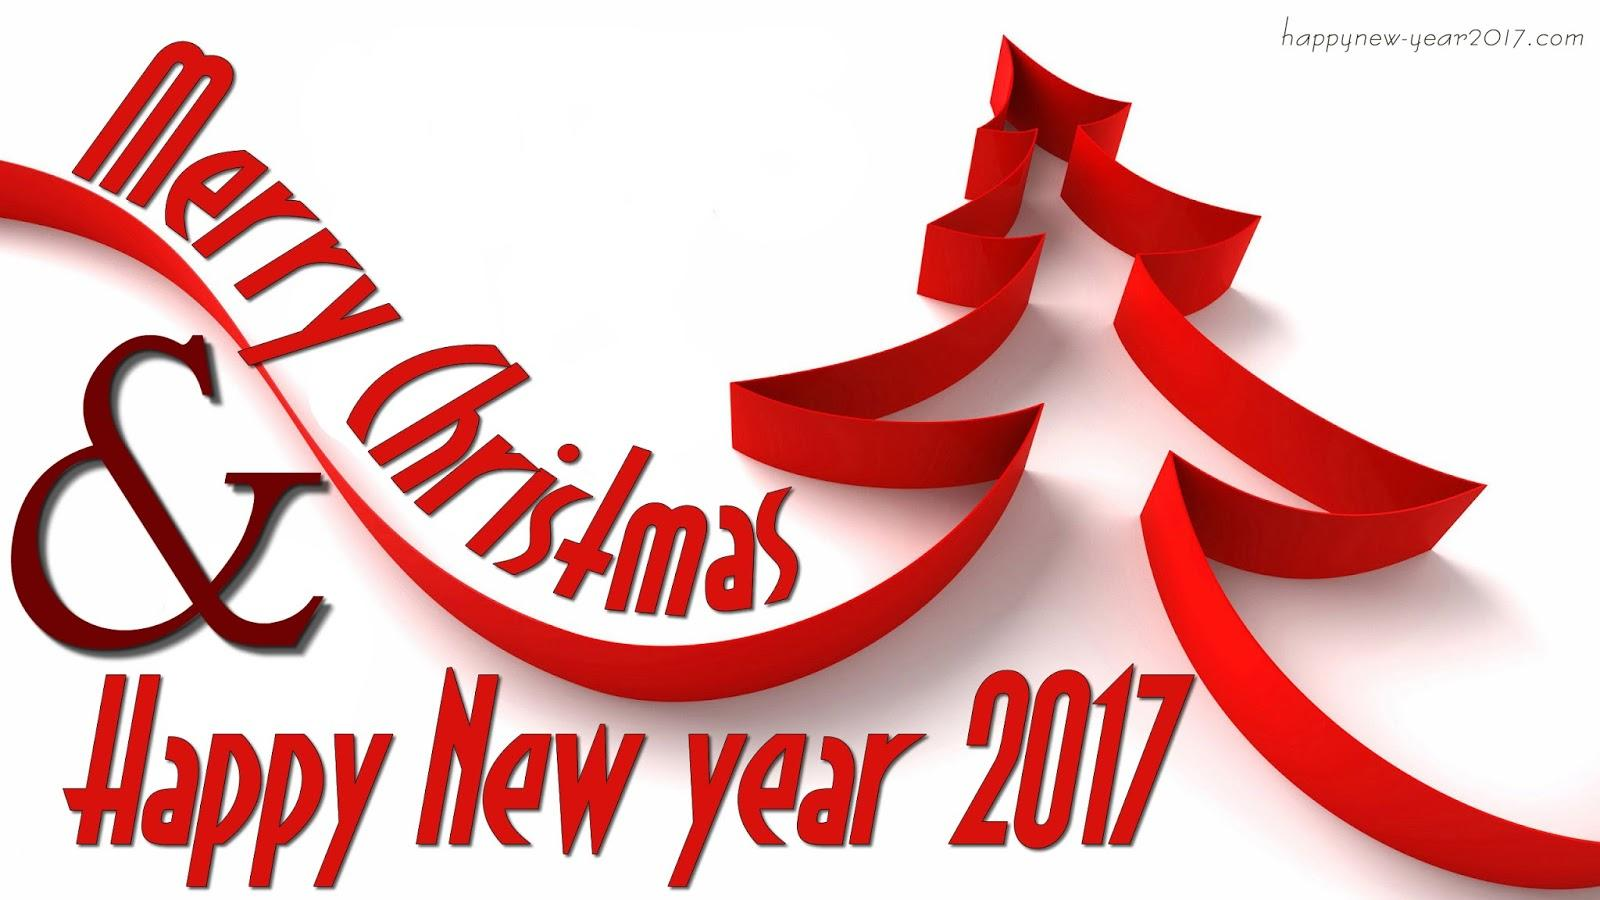 merry-christmas-and-happy-new-year-2017.jpg